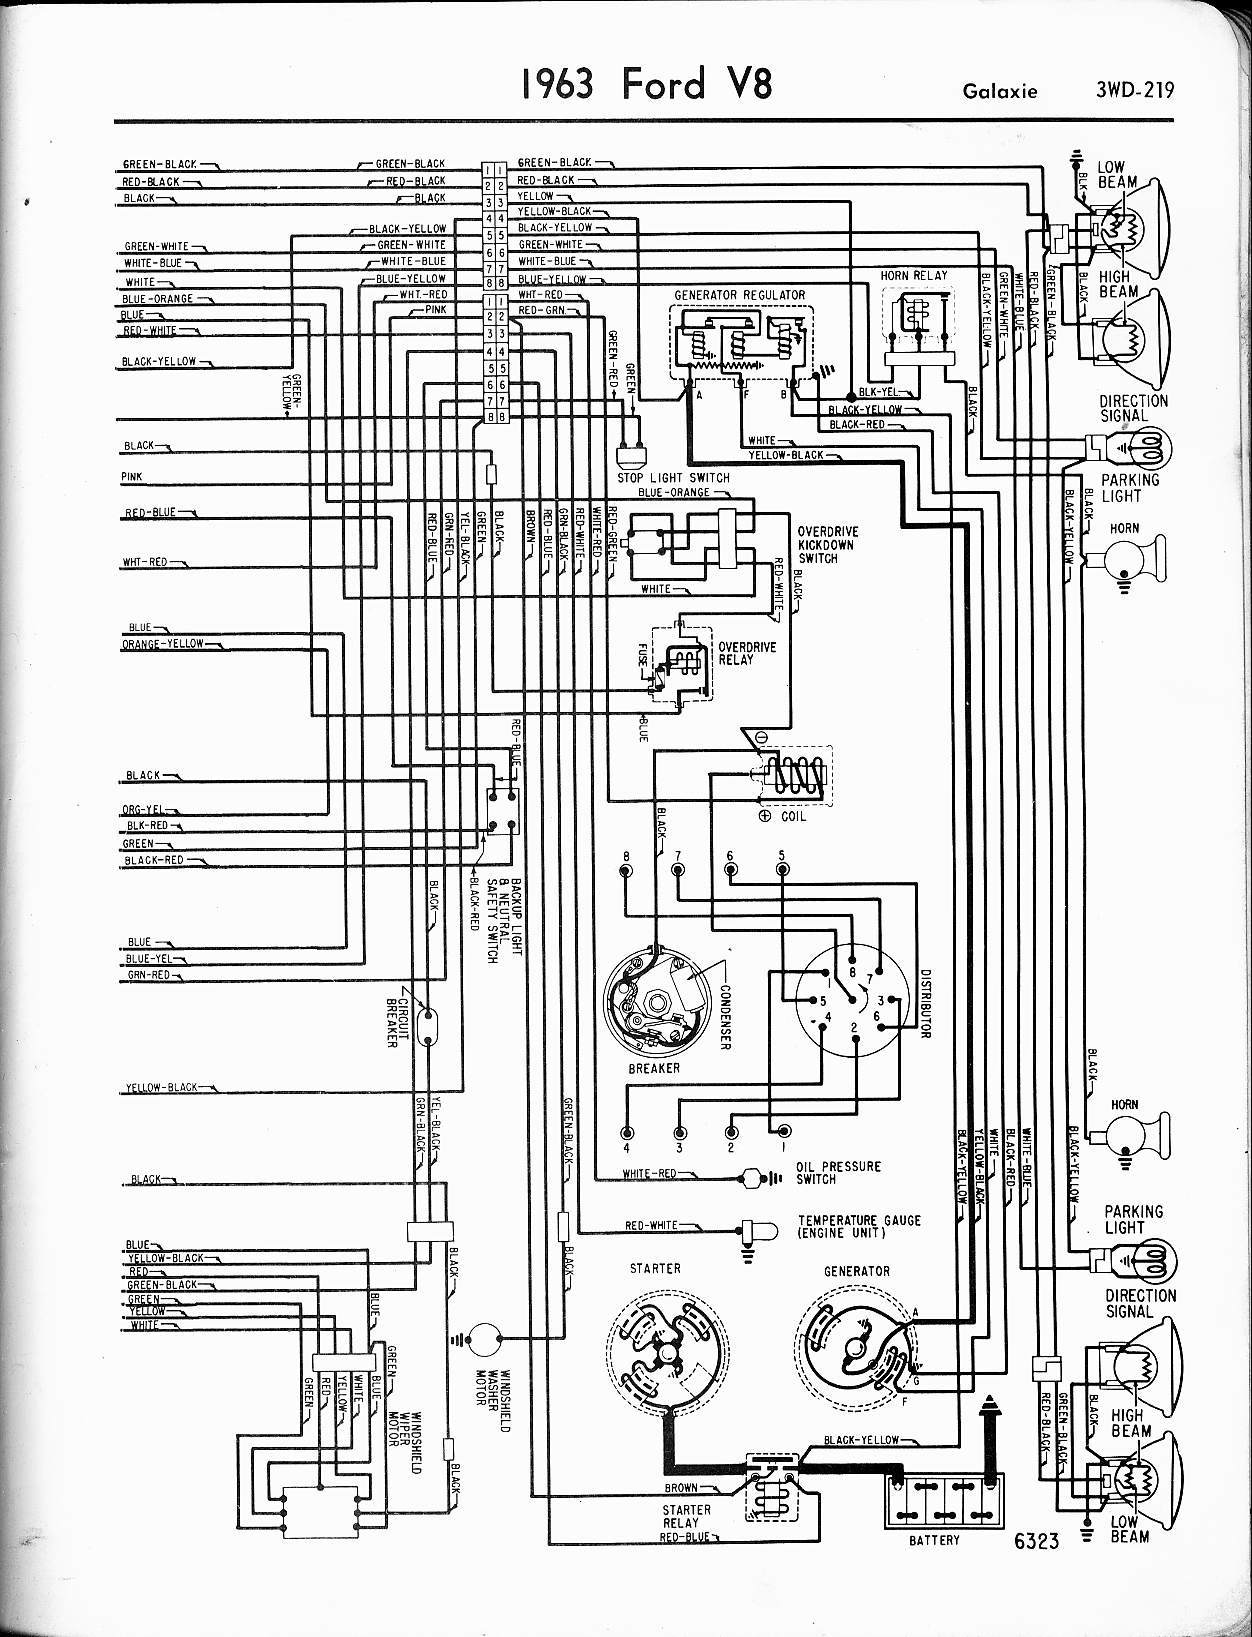 1963 Ford F100 Wiring Diagram 71 Ford F100 Wiring Diagram 1963 Ford F100  Wiring Diagram